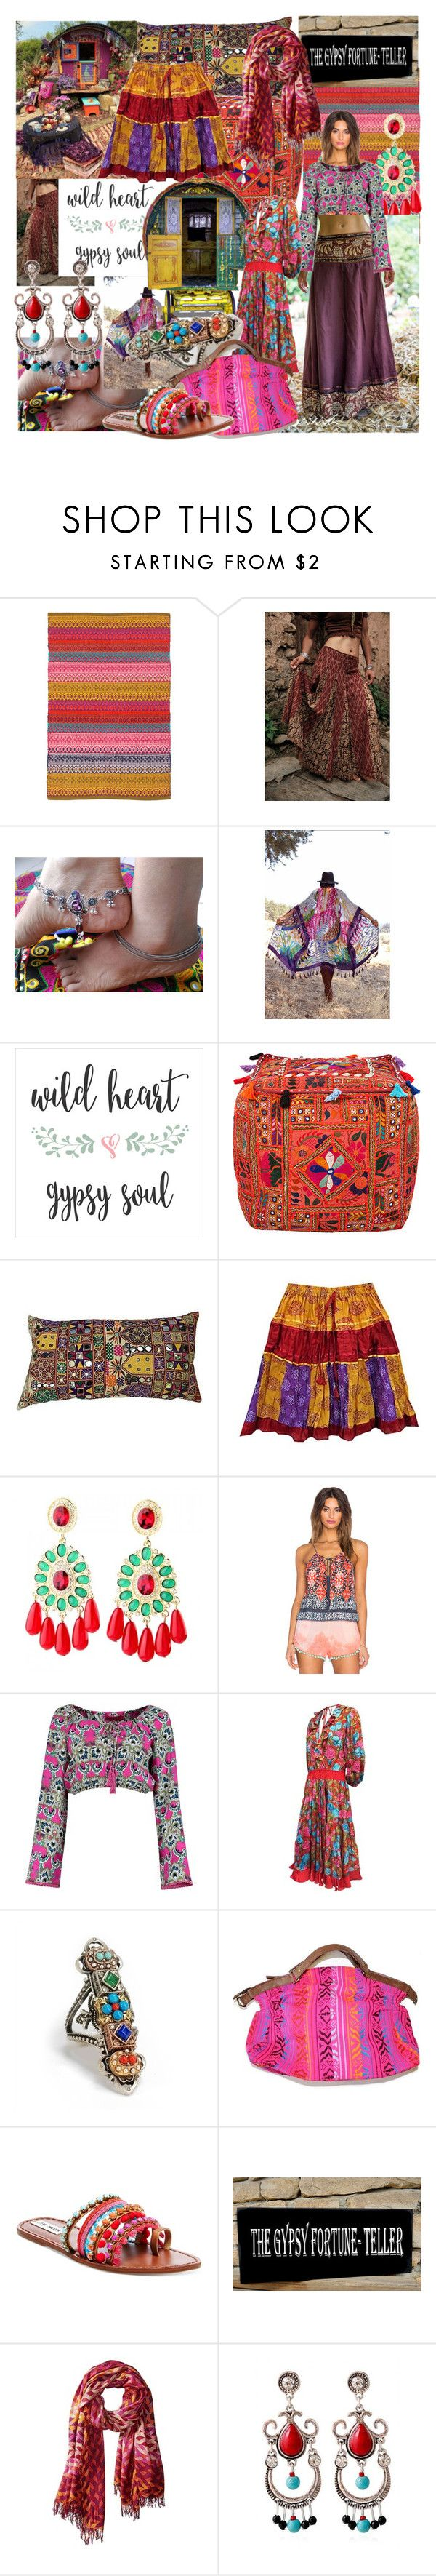 """The gypsy fortune-teller"" by gulokmini ❤ liked on Polyvore featuring Dash & Albert, Bloch, Le Donne, Gypsy05, Boohoo, Sweet Romance, Steve Madden and Theodora & Callum"